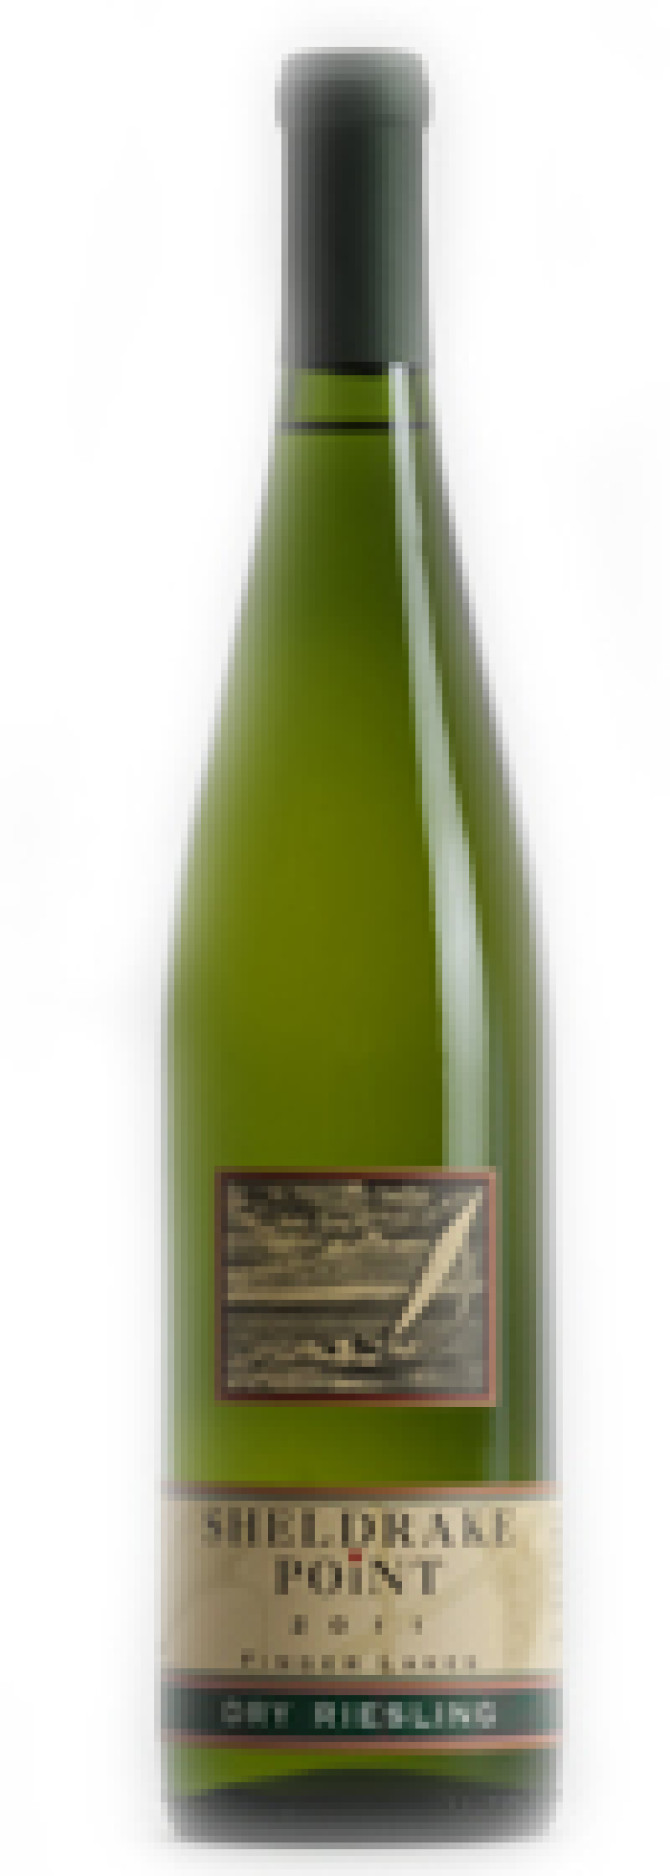 sheldrake-point-dry-riesling-finger-lakes-2011